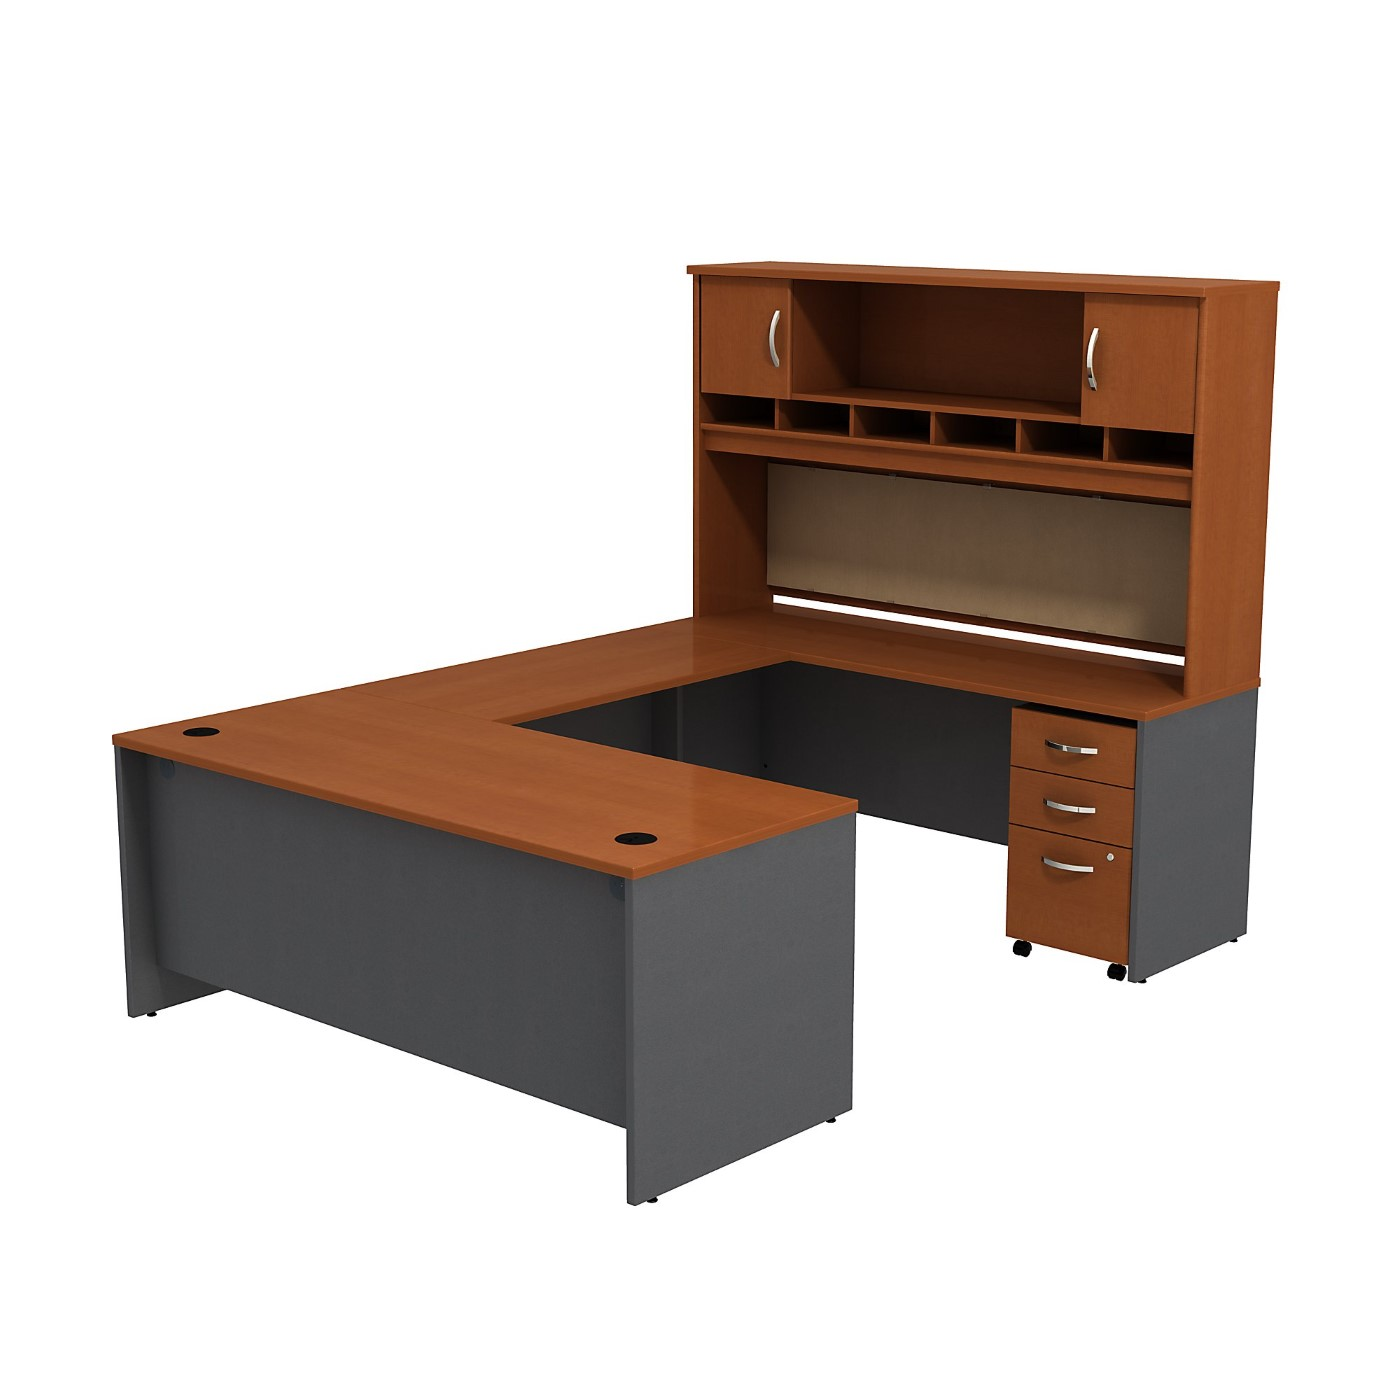 BUSH BUSINESS FURNITURE SERIES C U SHAPED DESK WITH HUTCH AND 3 DRAWER MOBILE PEDESTAL. FREE SHIPPING